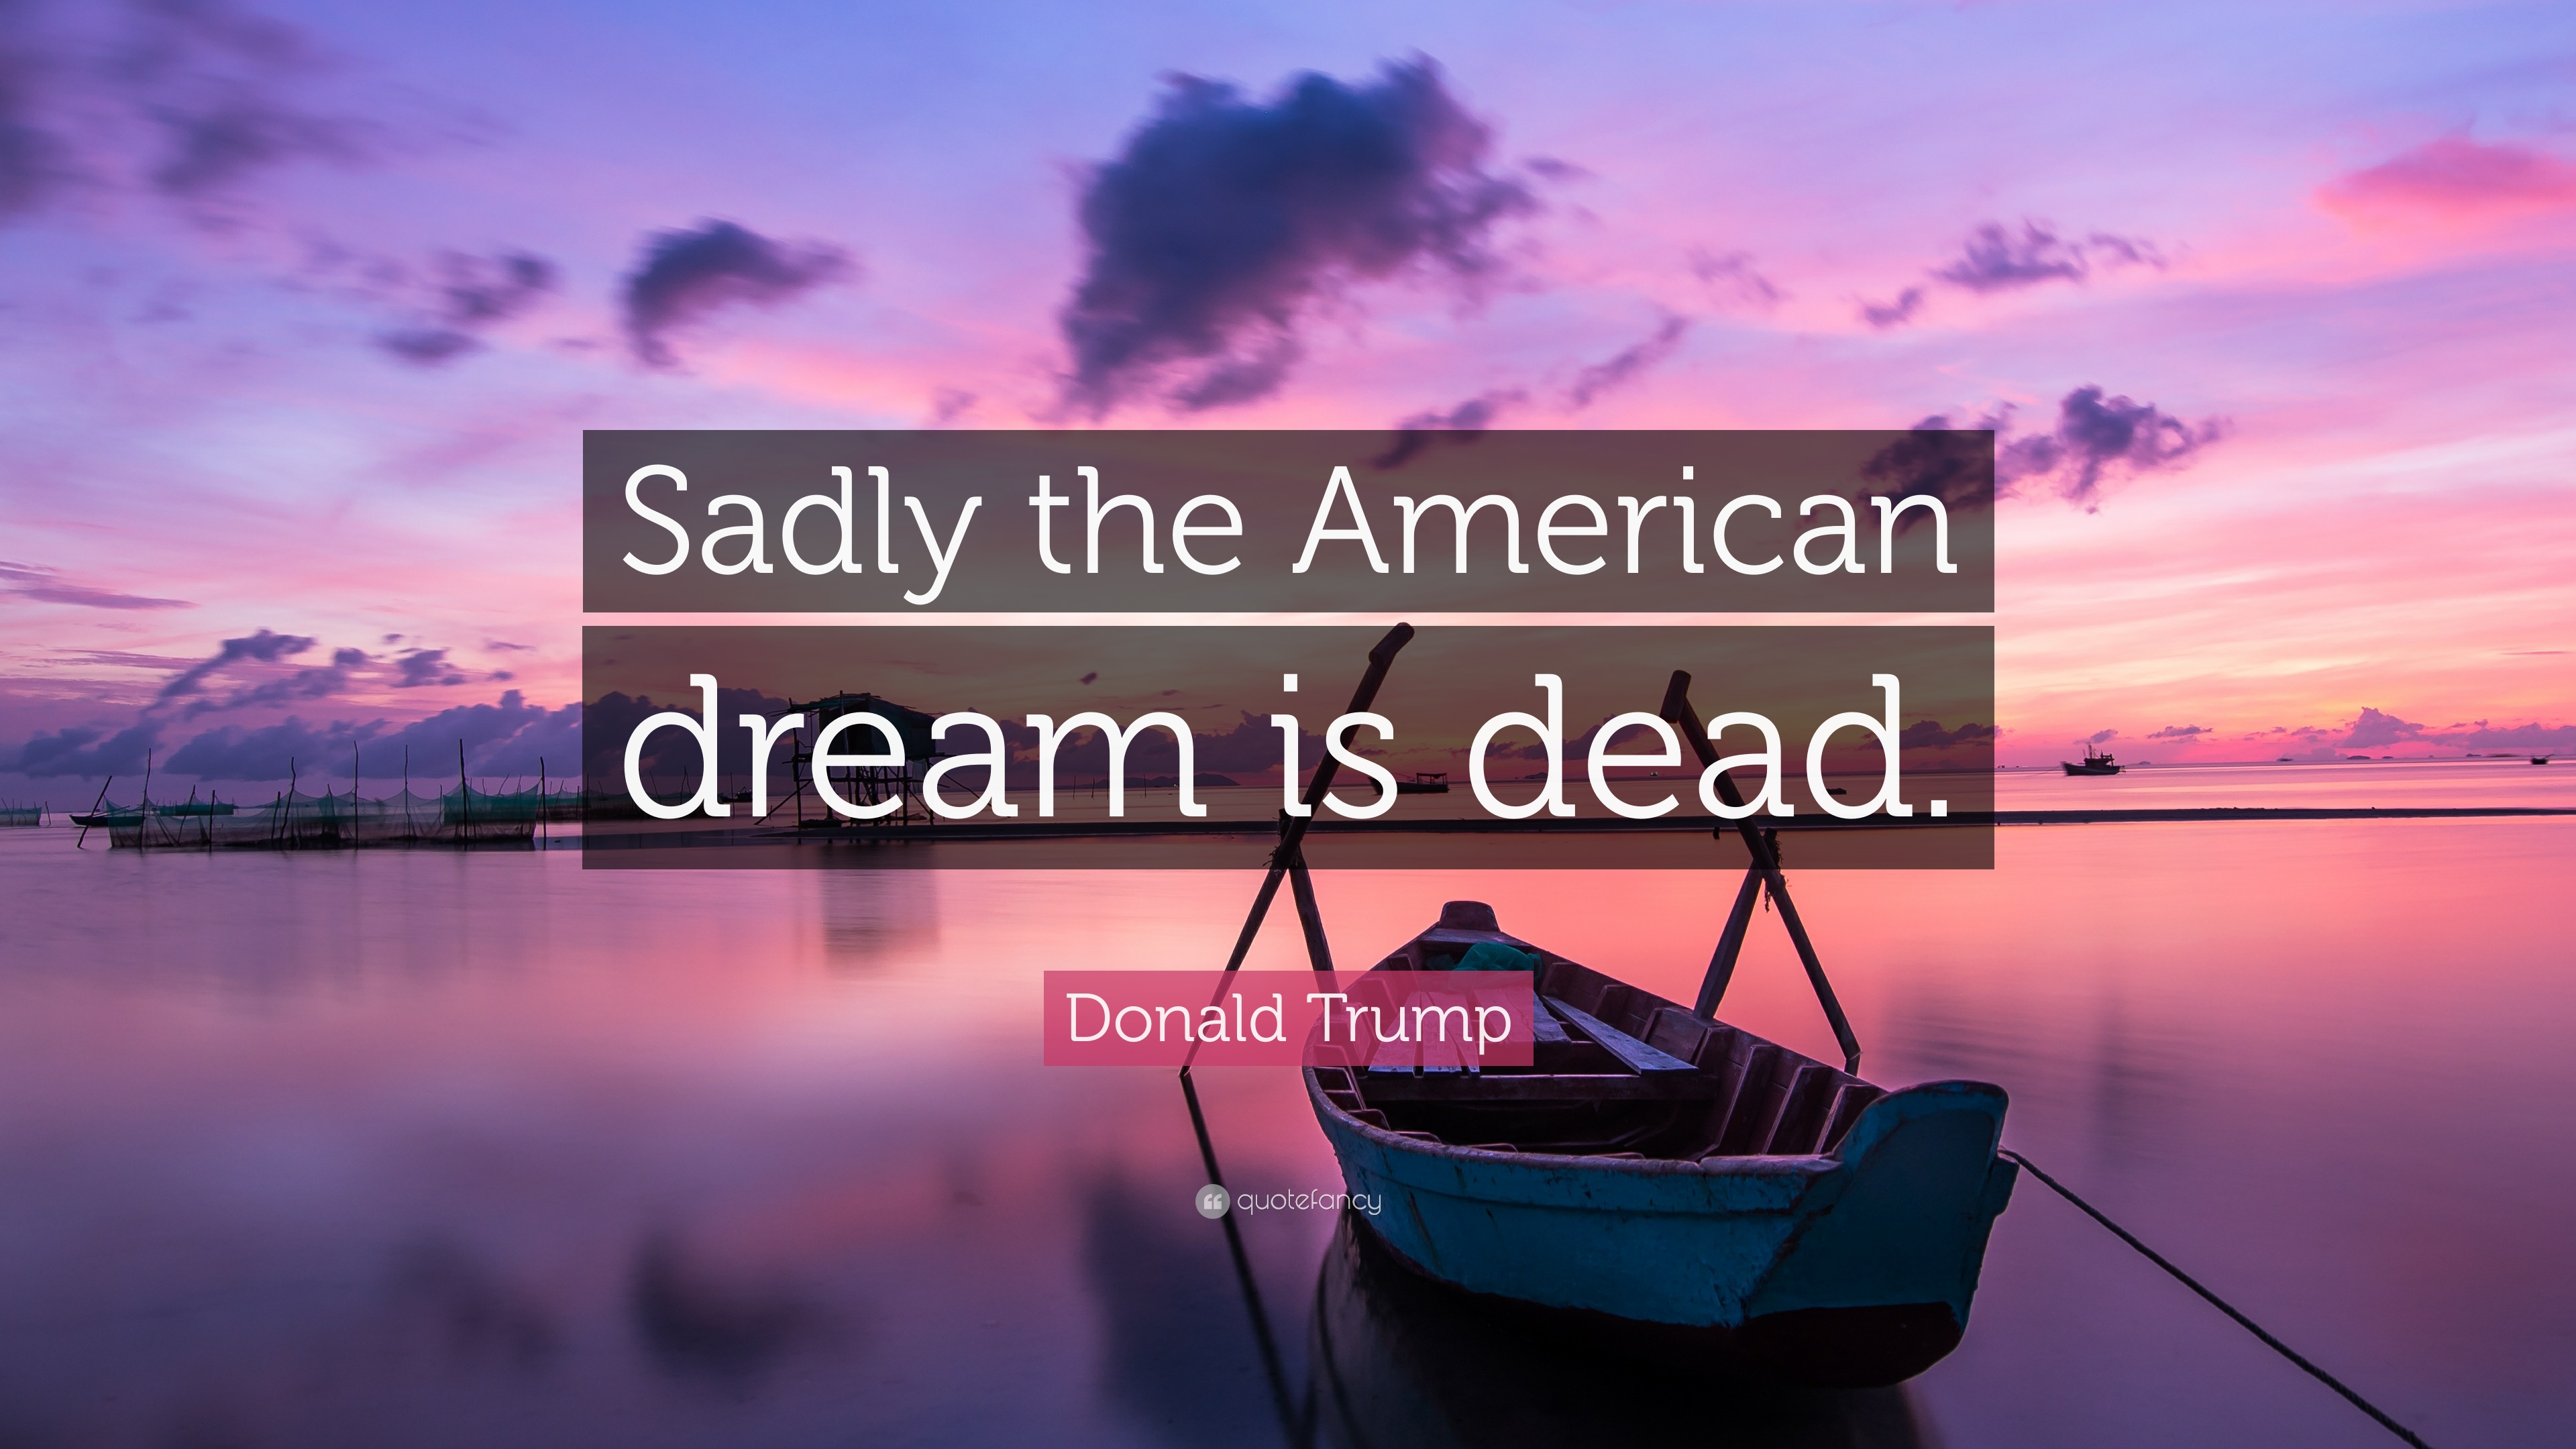 Chomsky: Is the American Dream Dead?